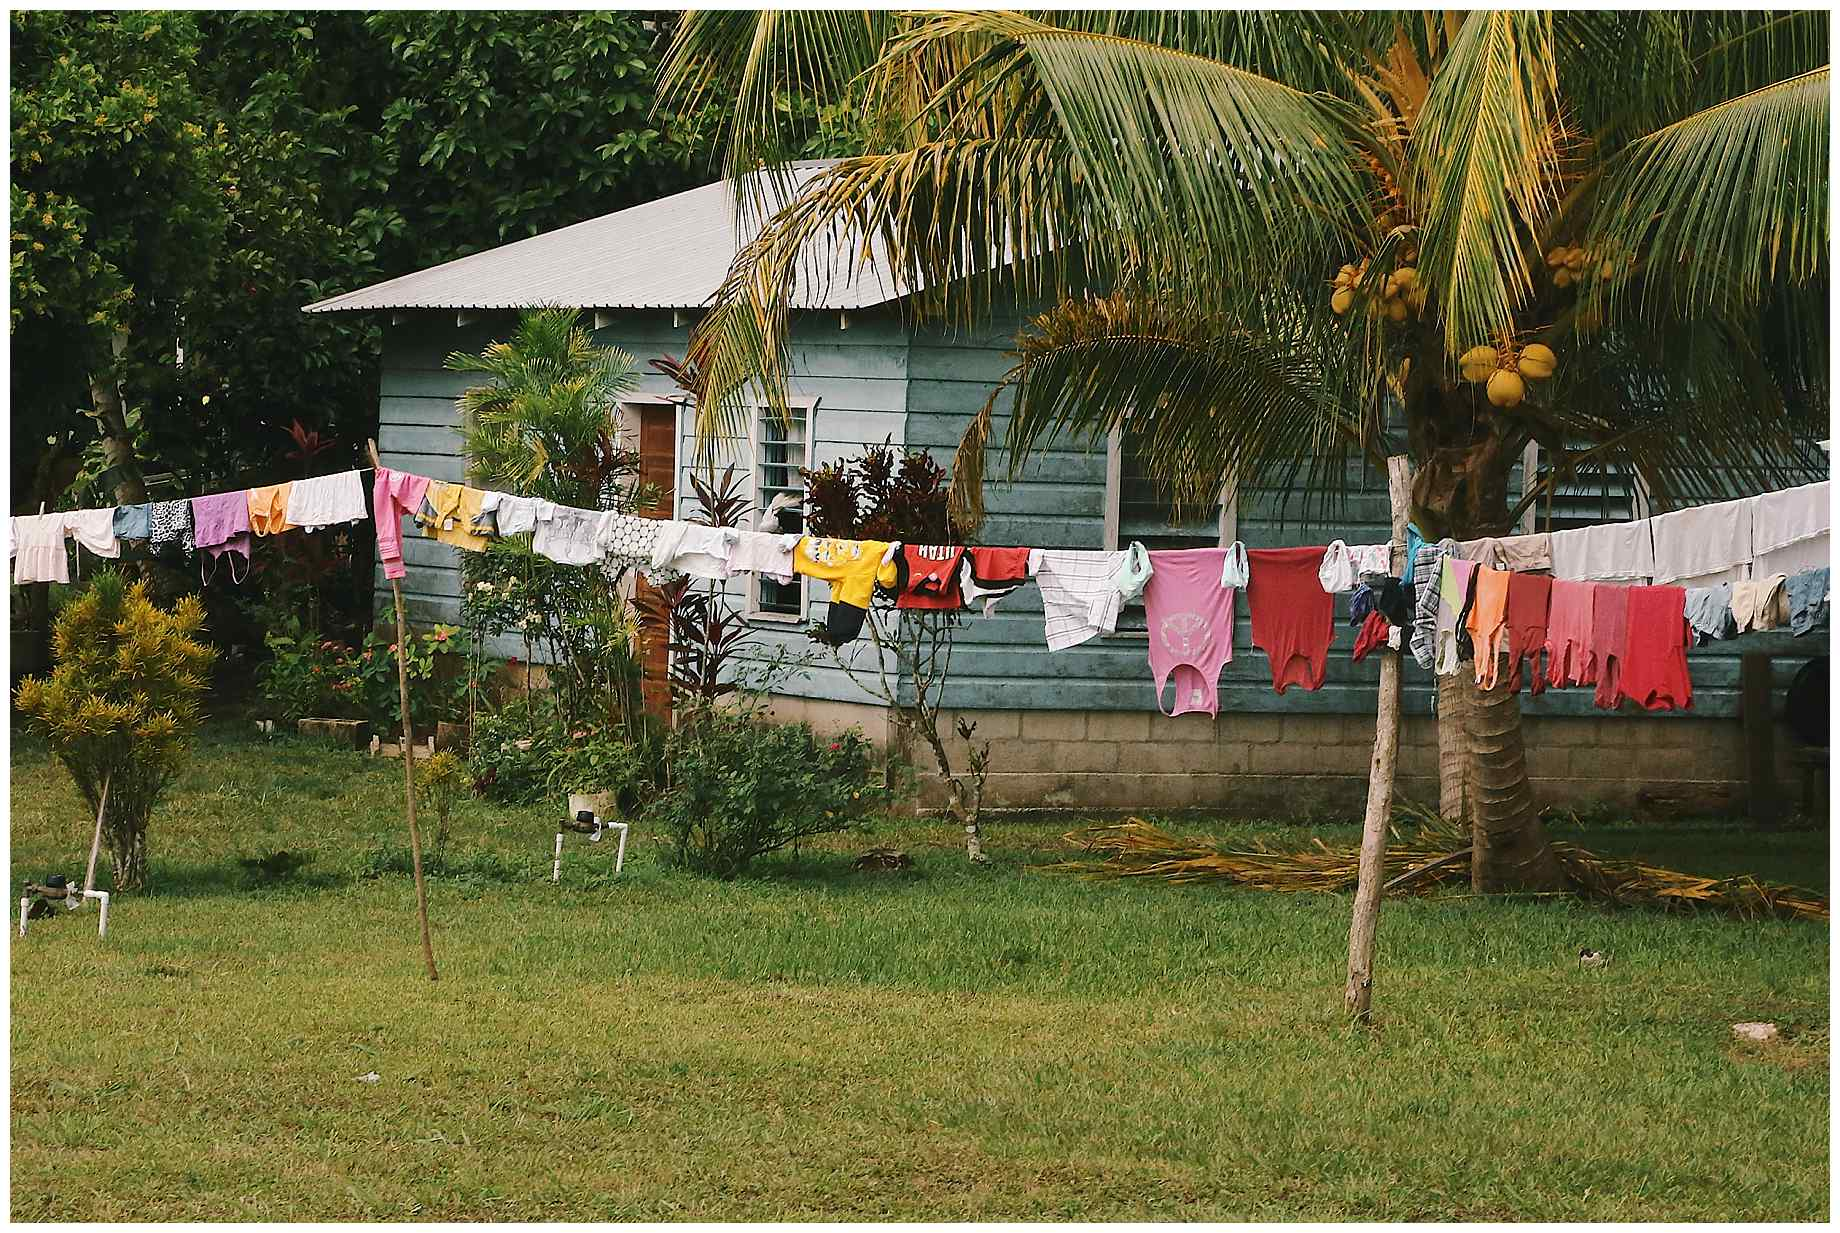 belize-mission-trip-024